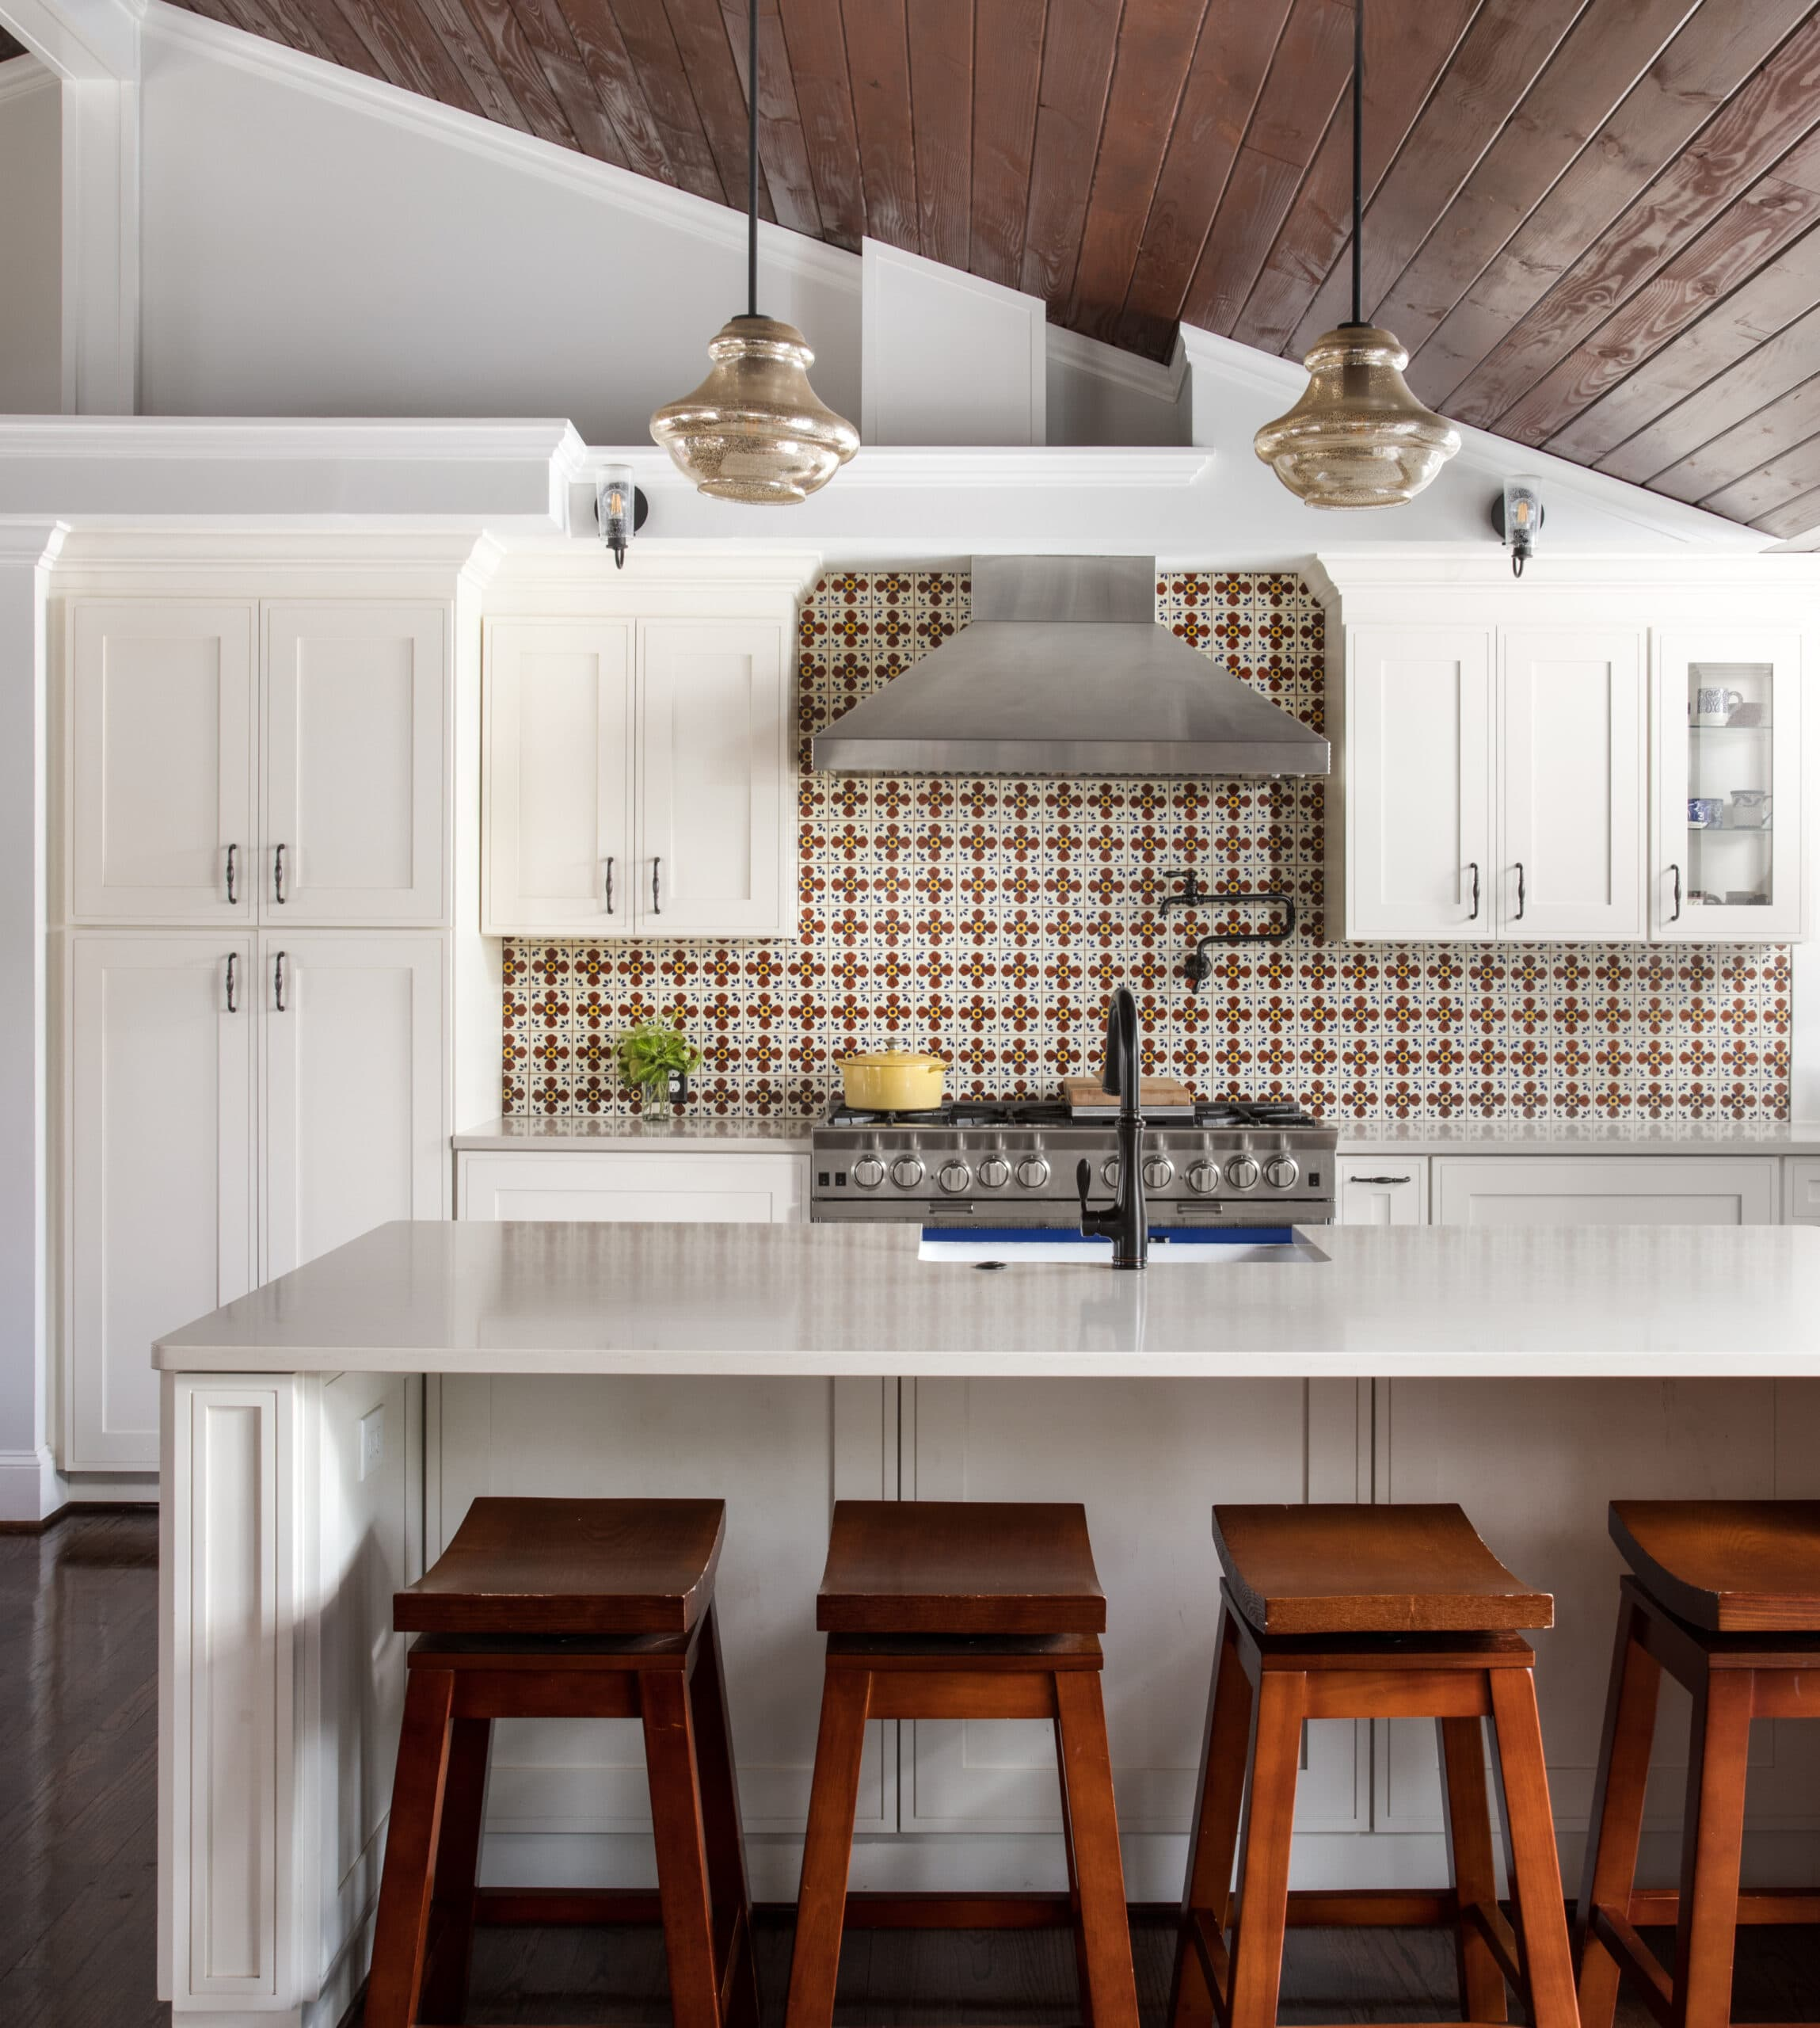 Which kitchen cabinets are timeless?